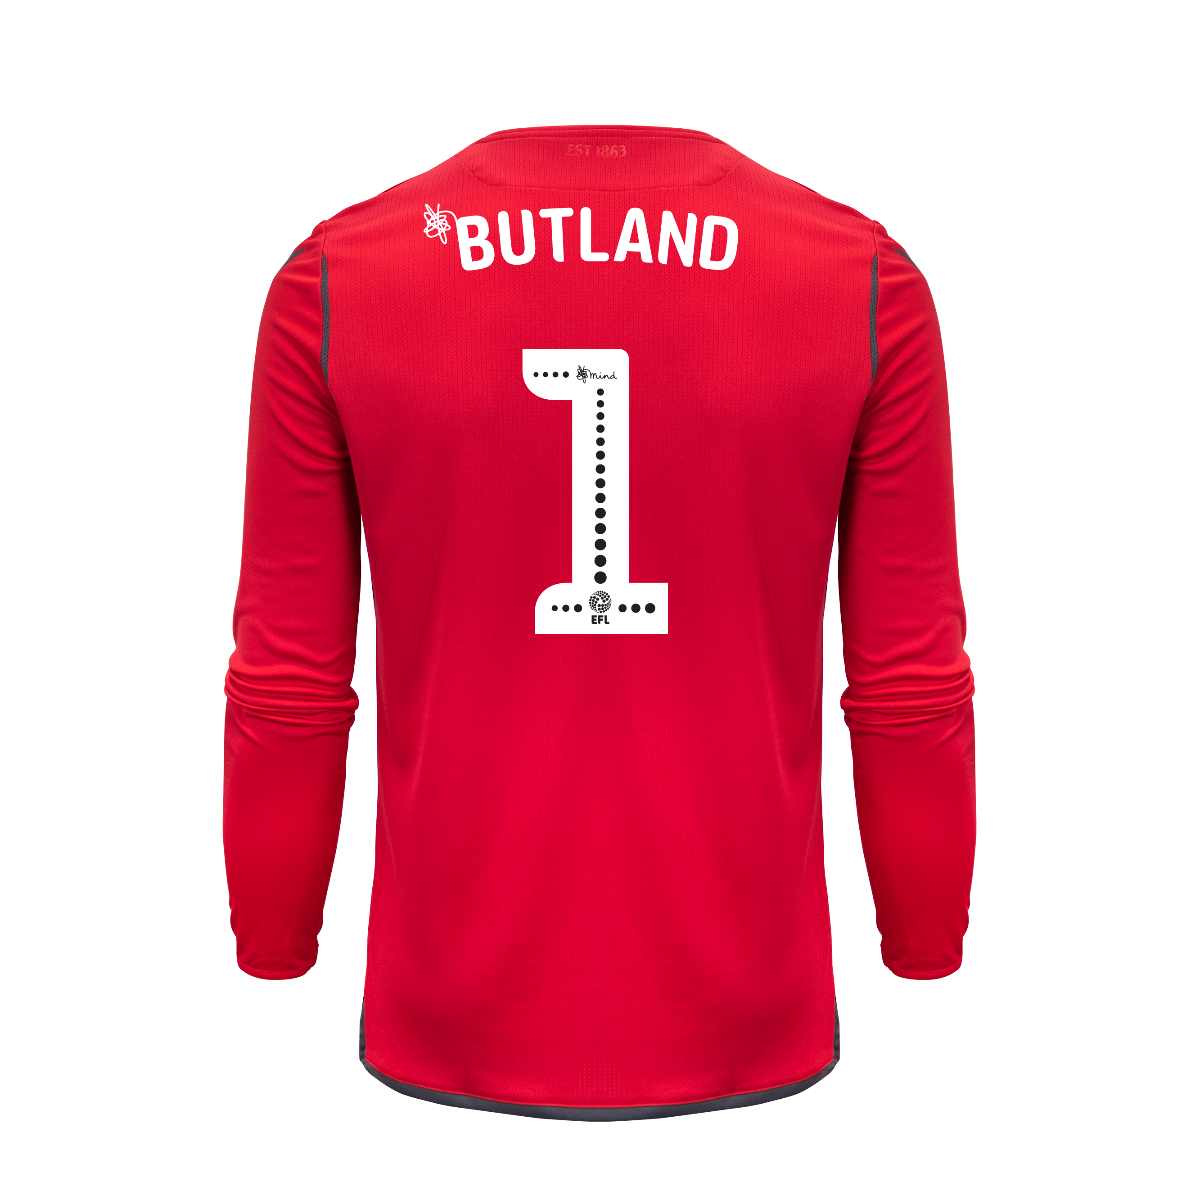 2019/20 Adult Away GK Shirt - Butland